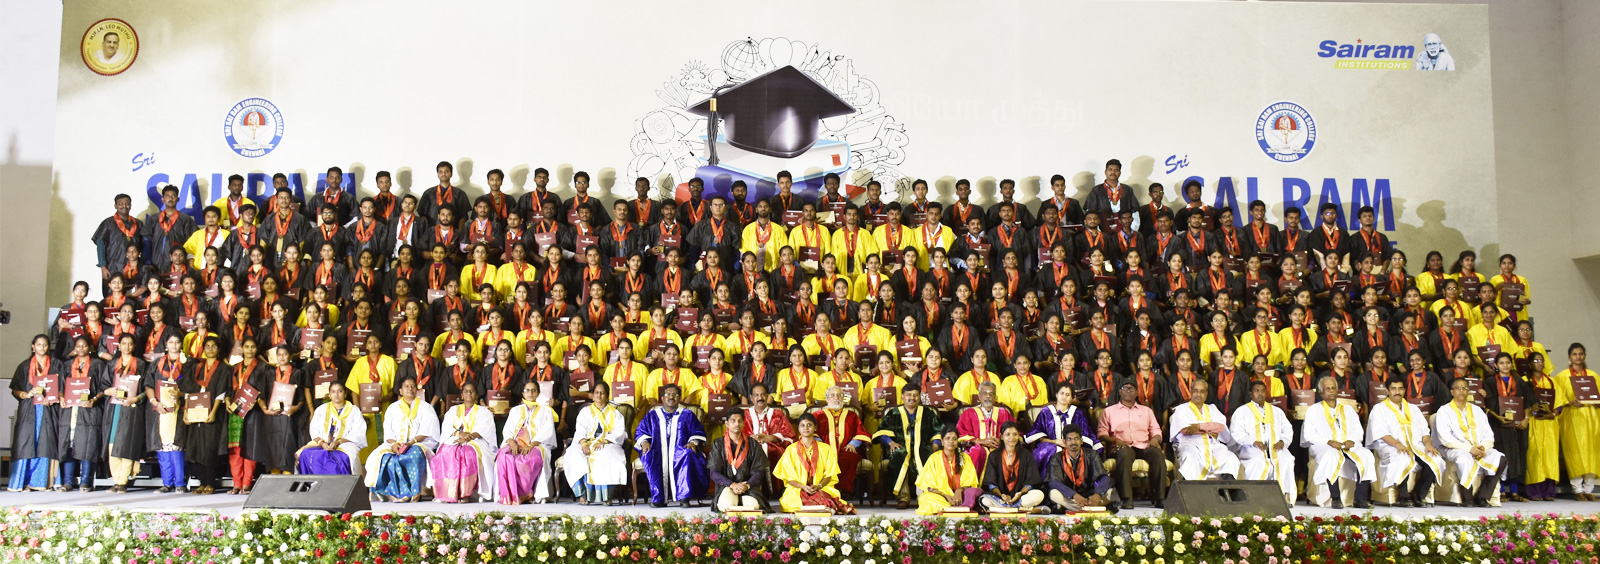 sairam-Graduation-Day-1